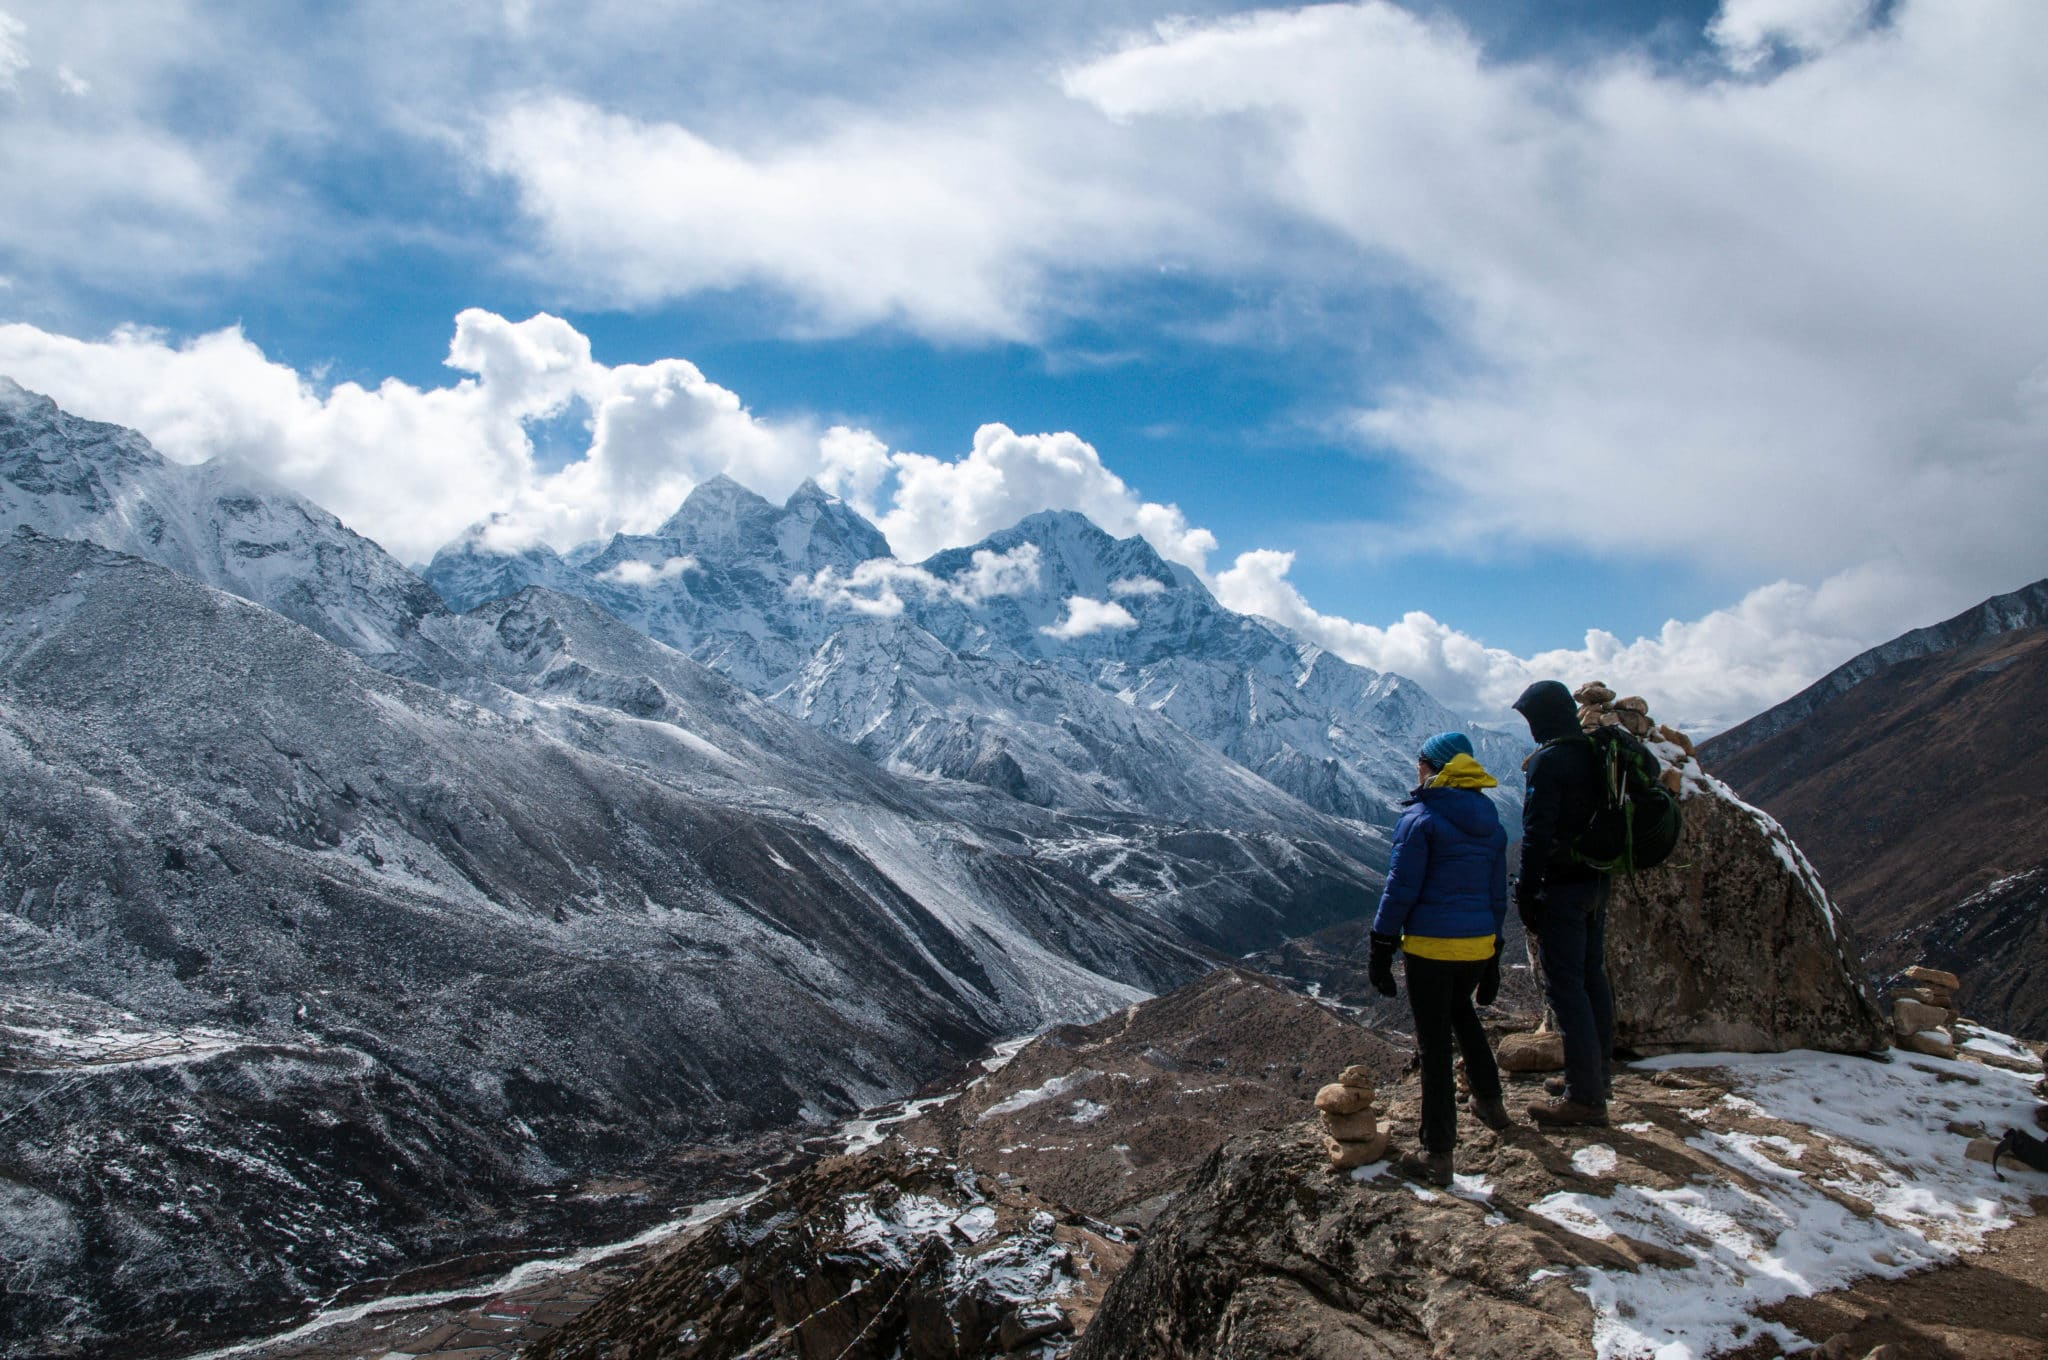 Taking in the view above Dingboche